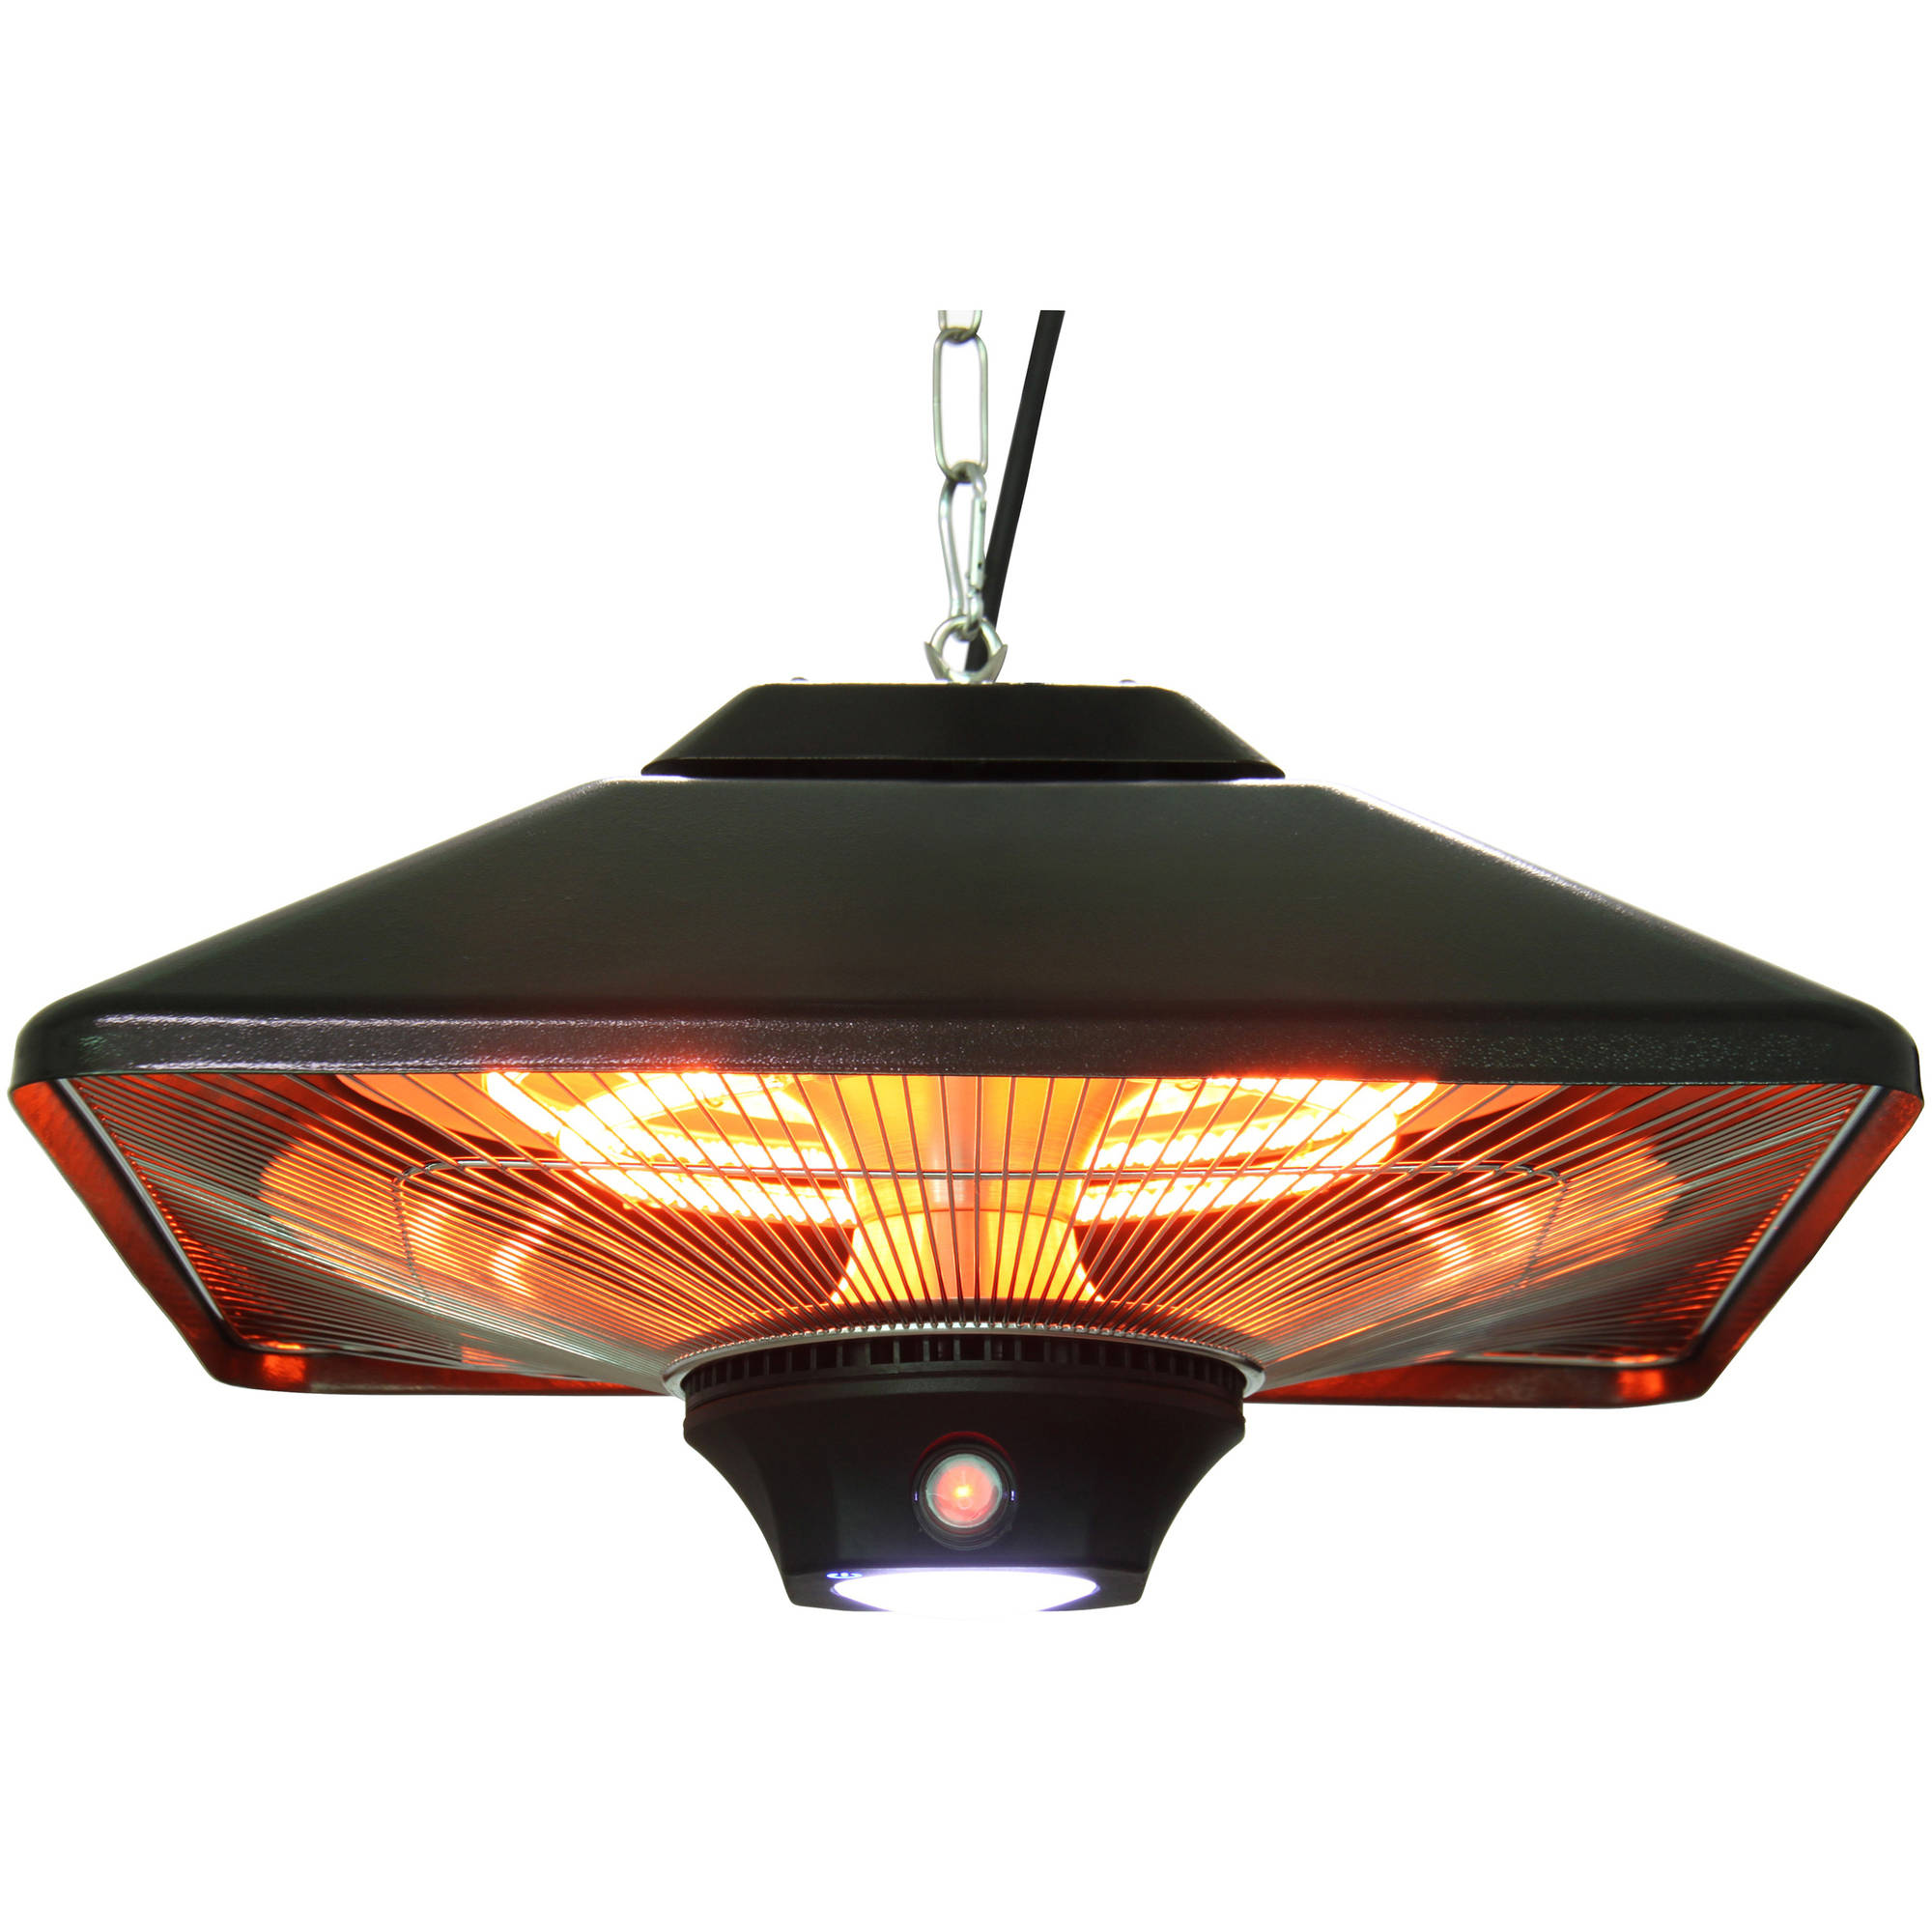 EnerG+ HEA-21288LED-B Hanging Infrared Electric Heater, 1500W, Black